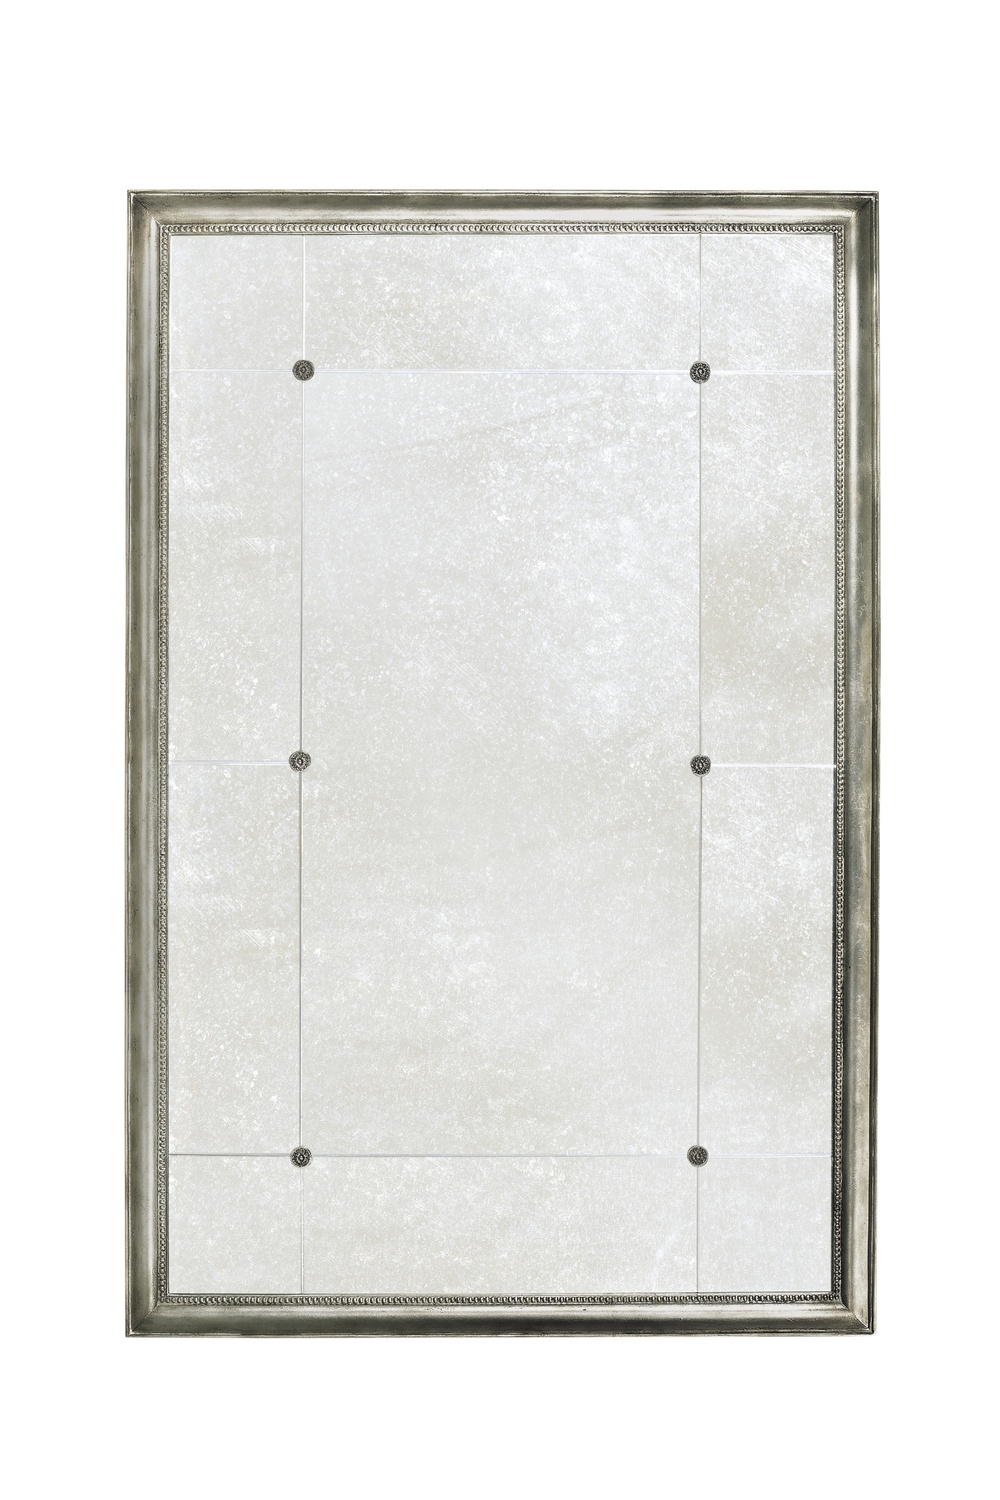 Hickory Chair - Dauphine Panel Mirror